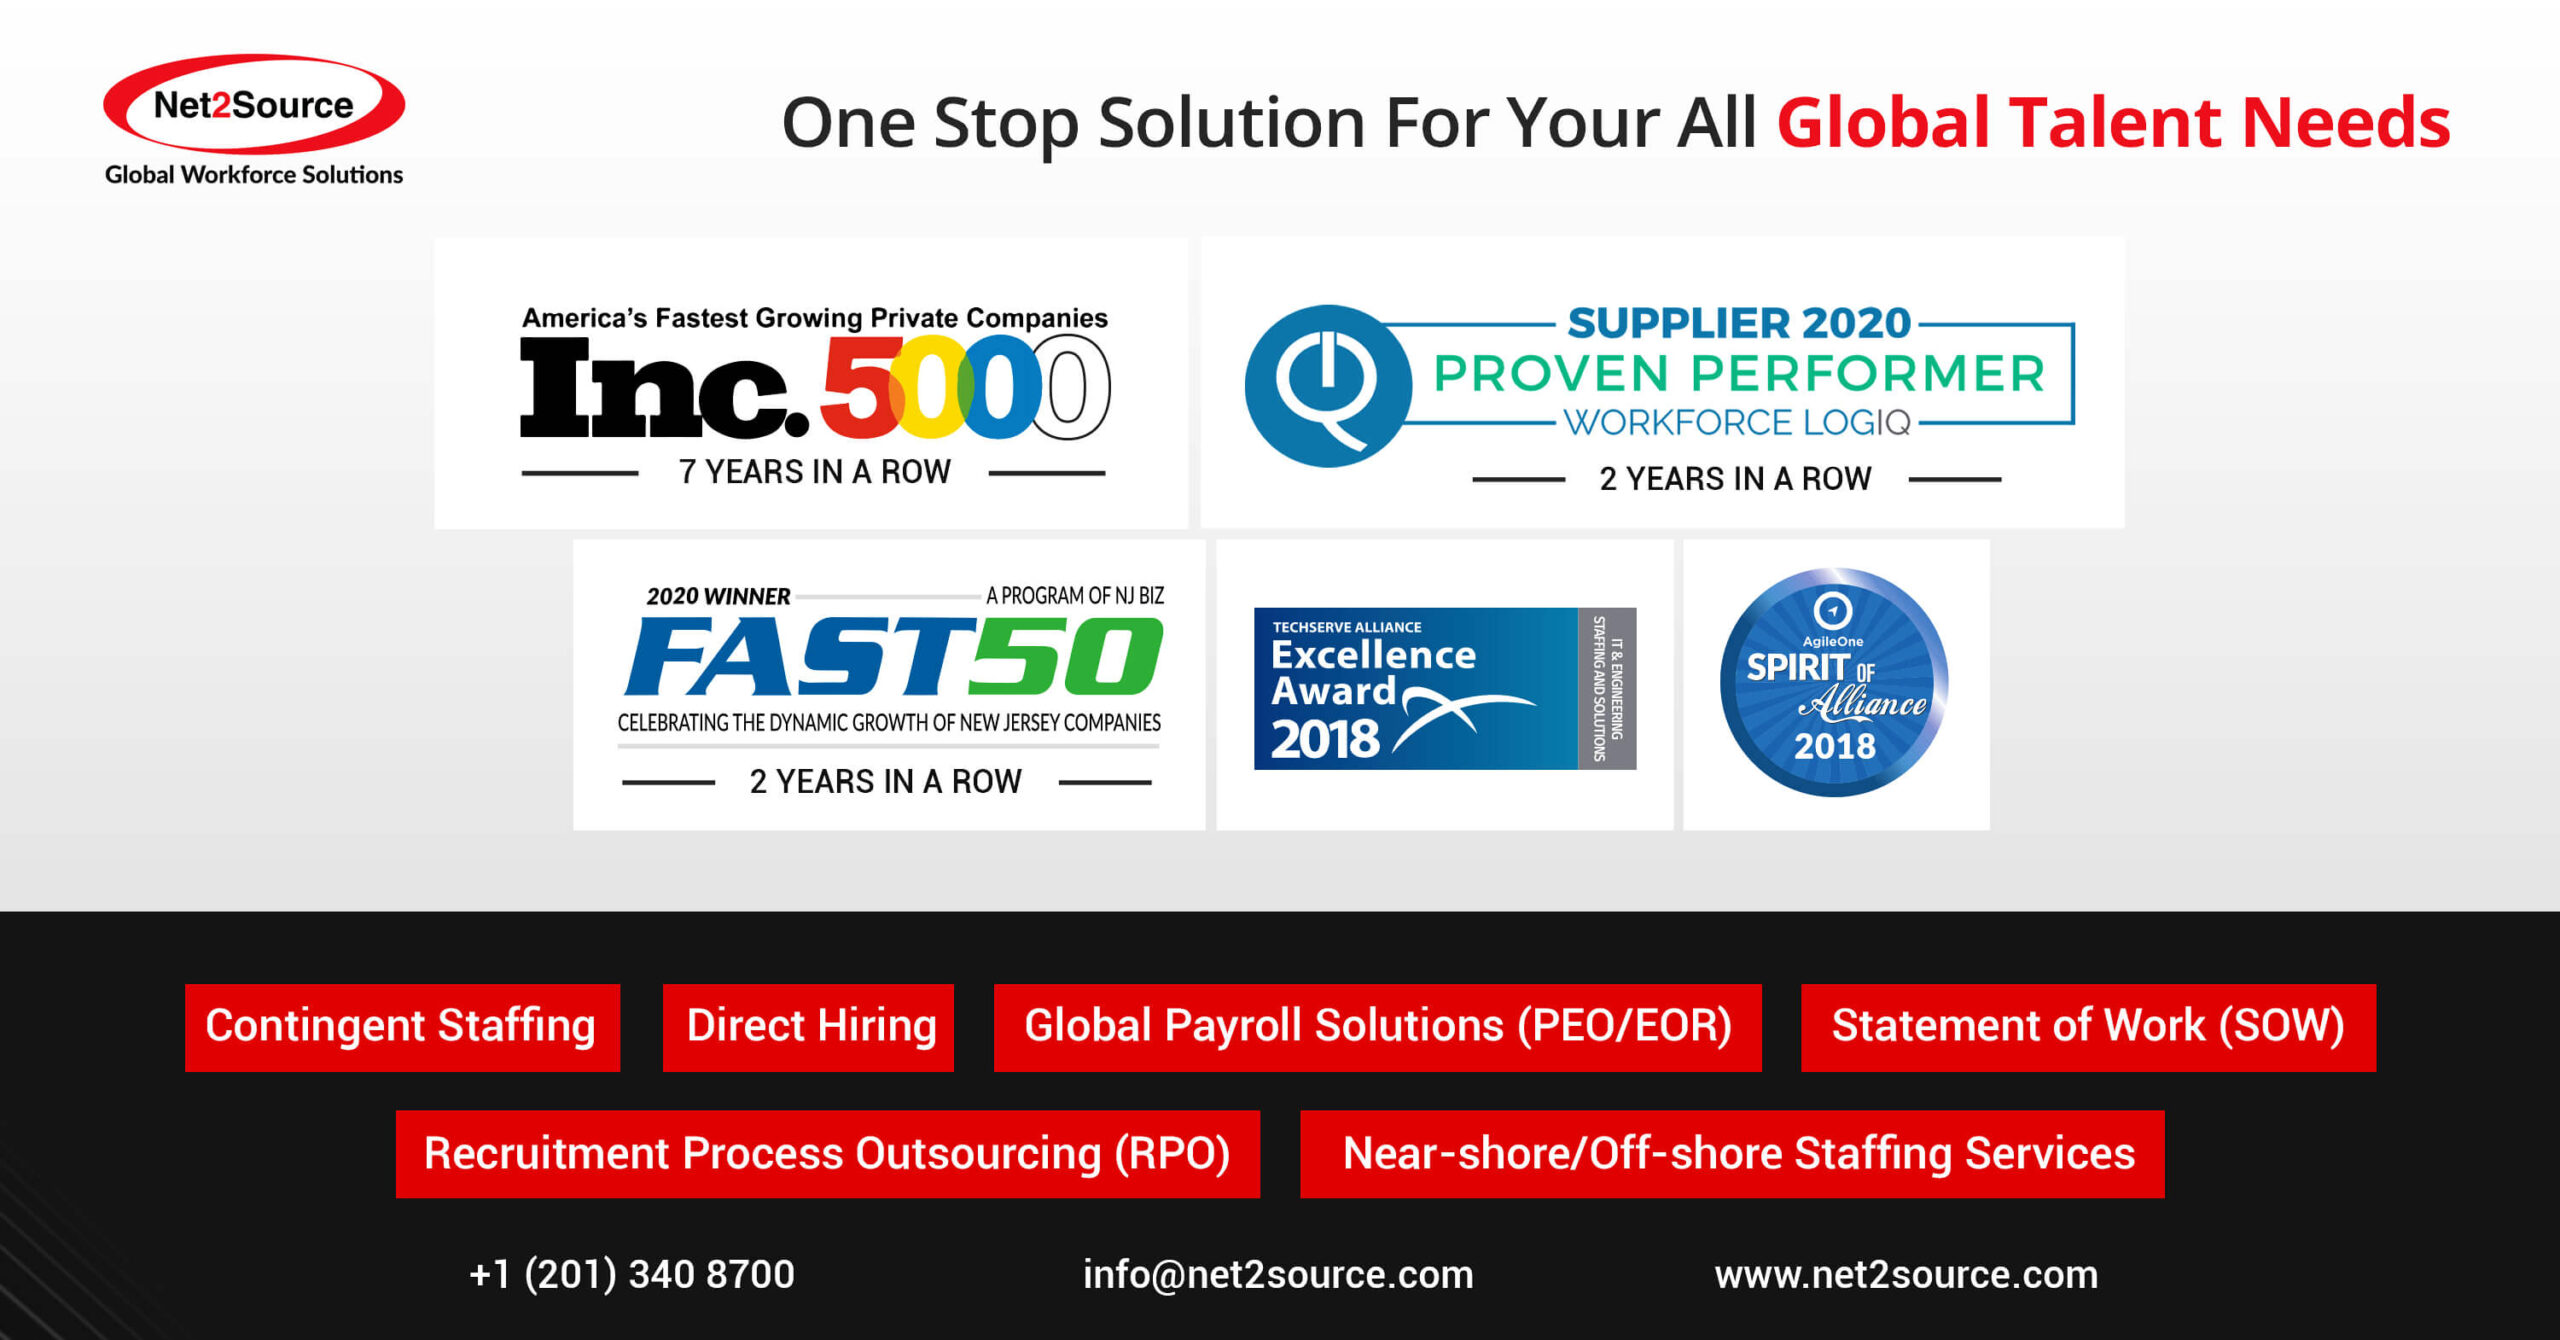 Net2Source - Global Workforce Solutions Company